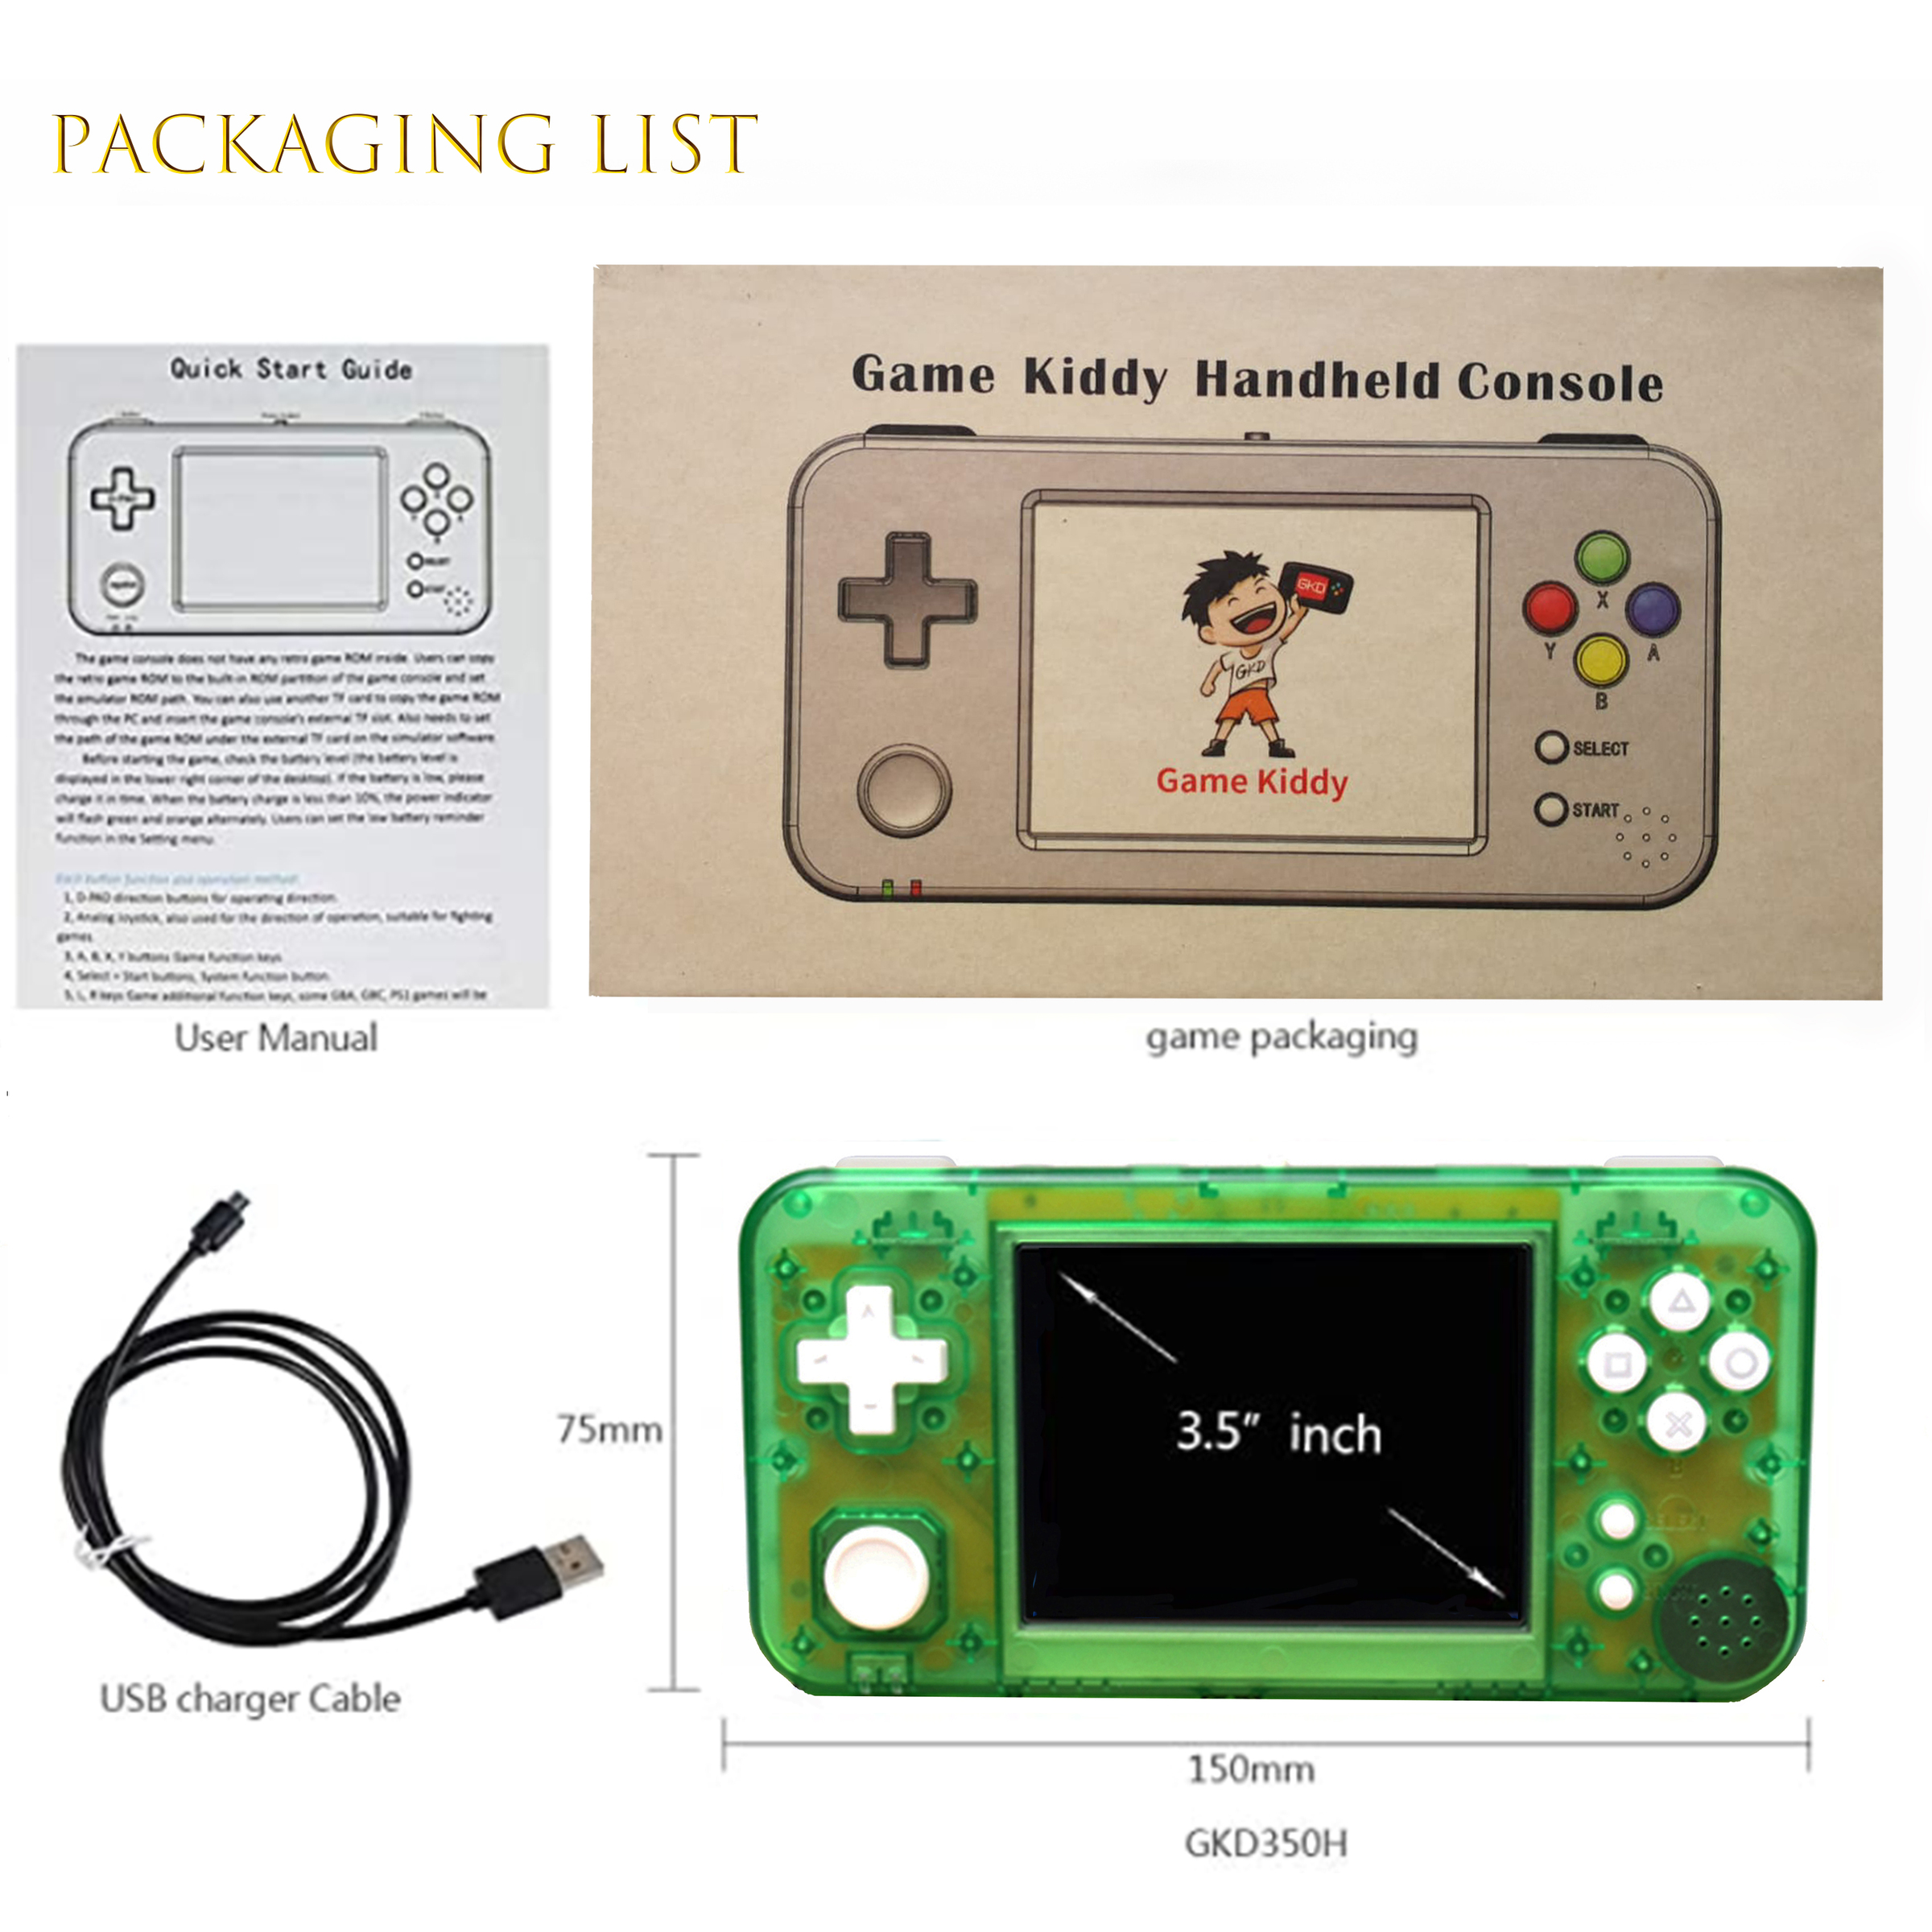 Game Kiddy 350H Pakaging List.jpg